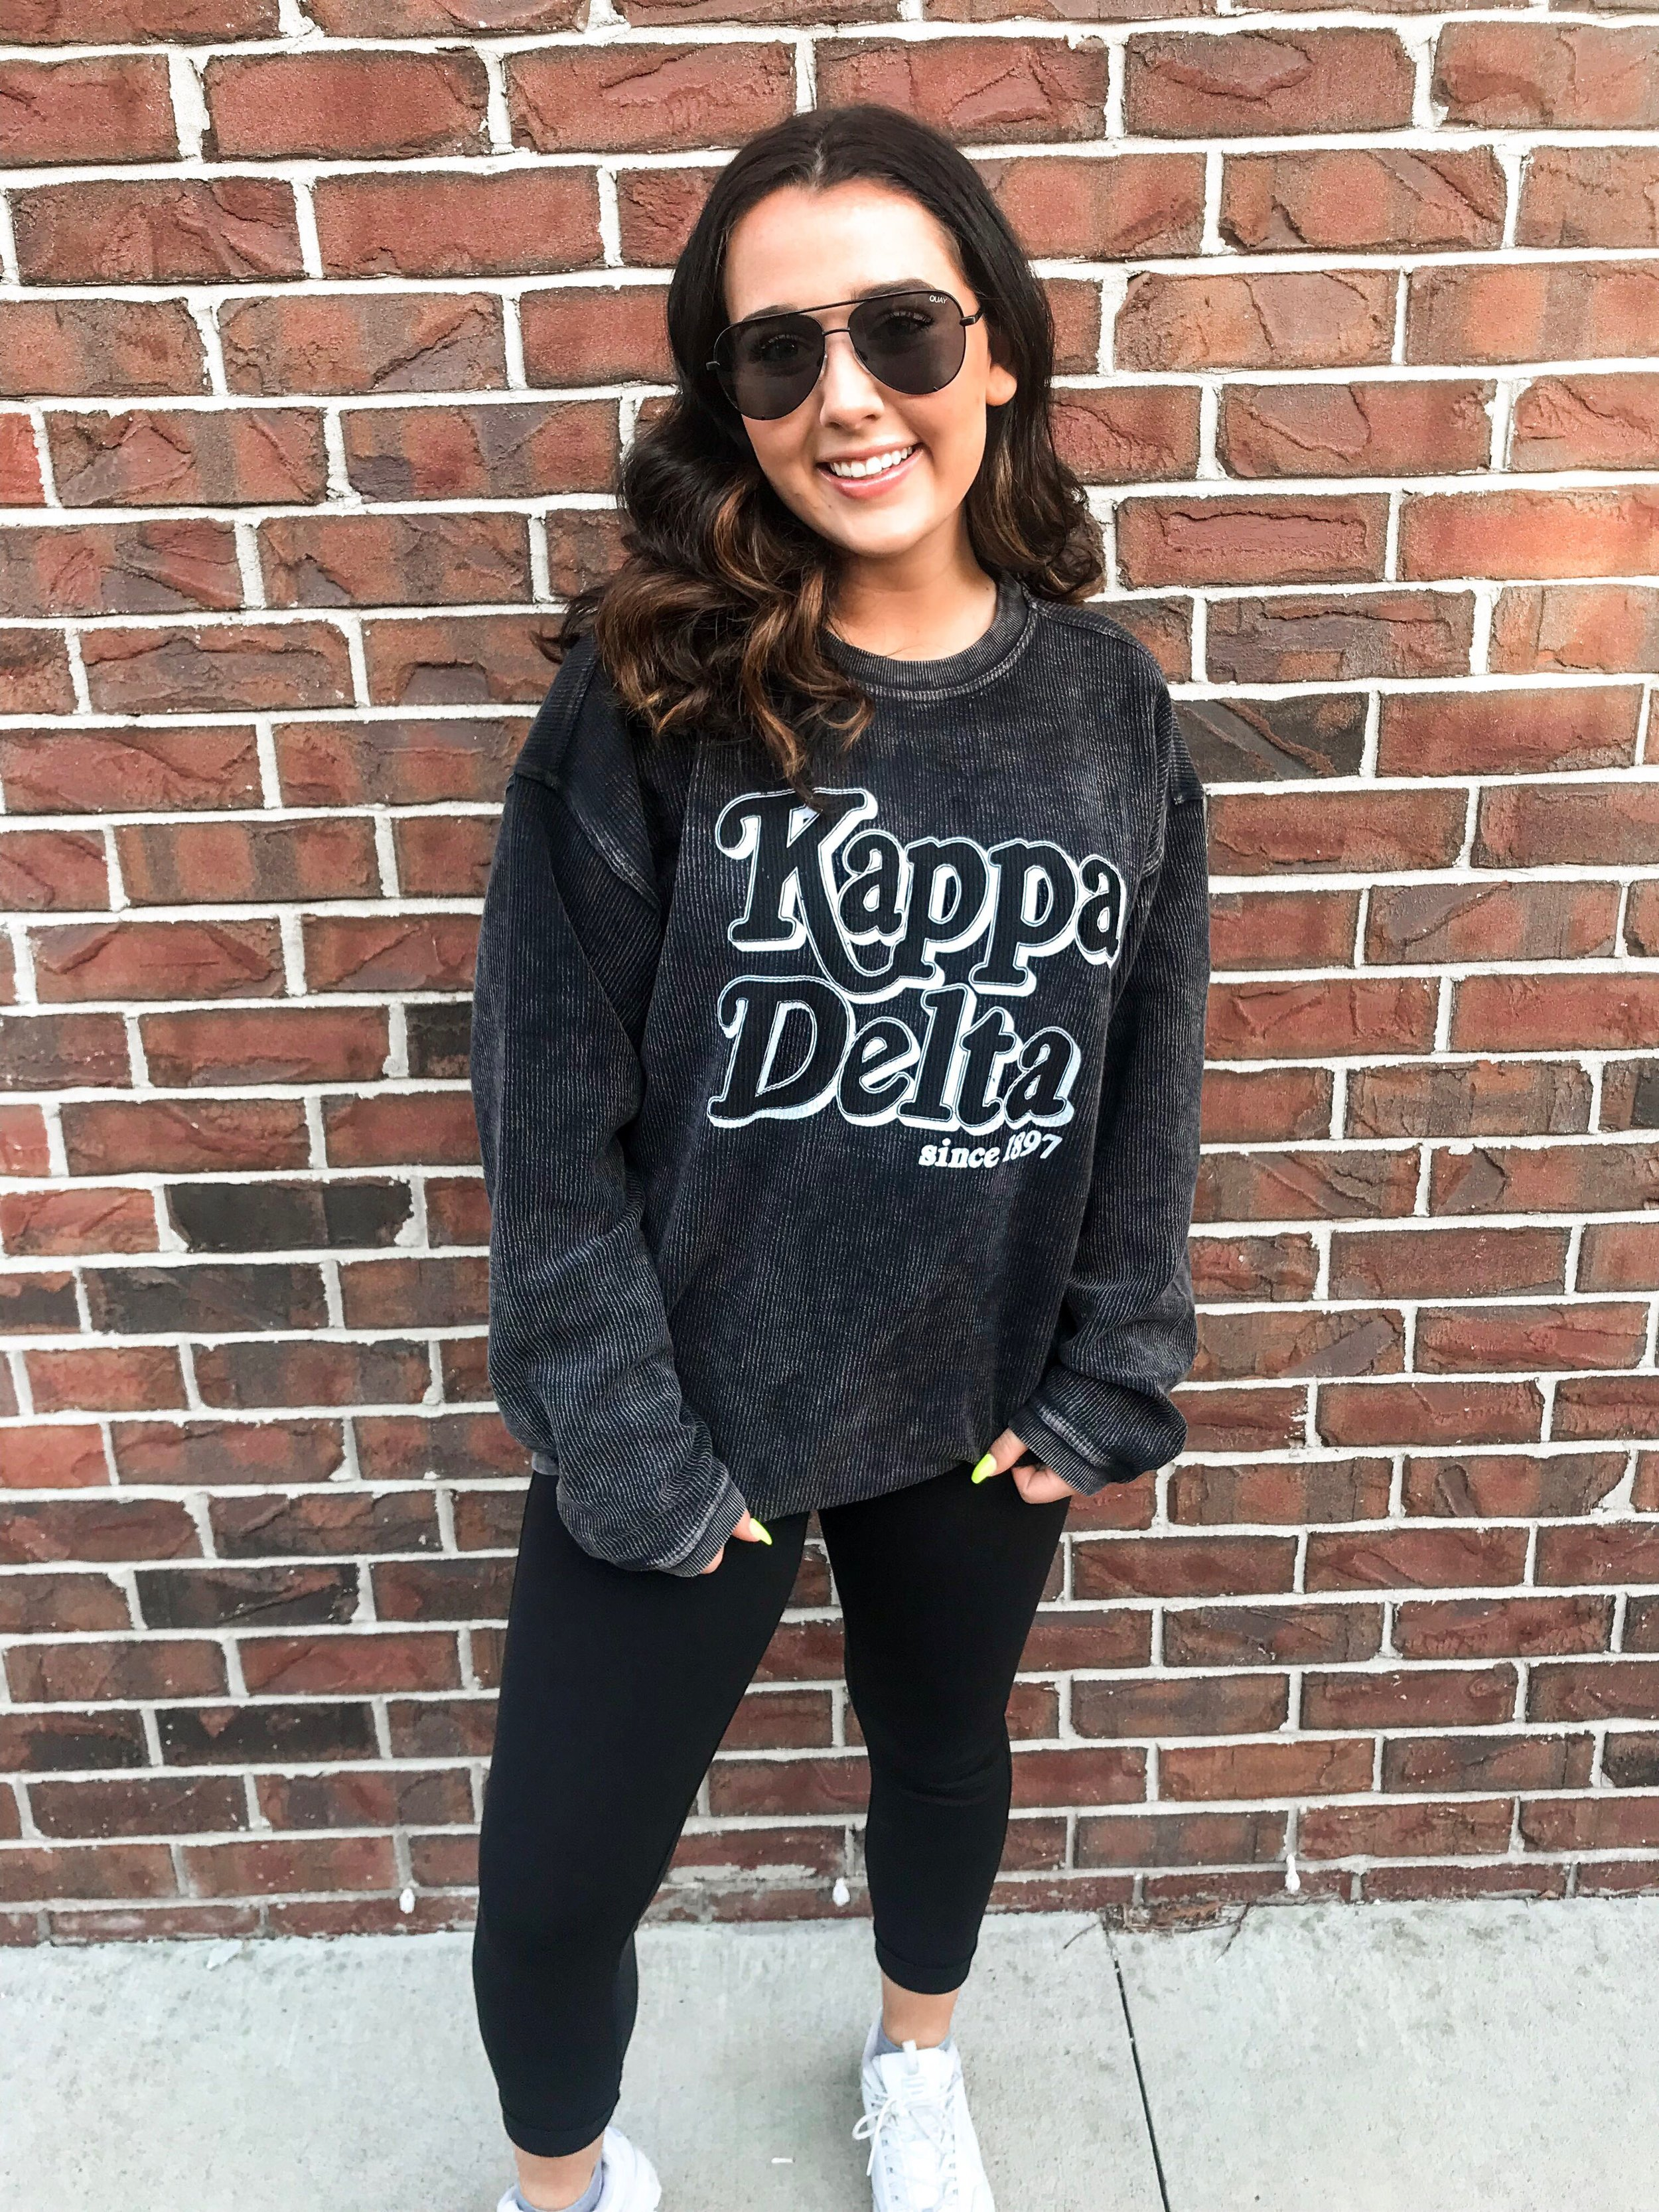 """""""The corded crews are my go-to comfy item for class! They are perfect to pair with leggings, and I have one for every day of the week! I'm that obsessed."""" - -AINSLEY O'DONNELL (@ainsleyodonnel), Kappa Delta"""